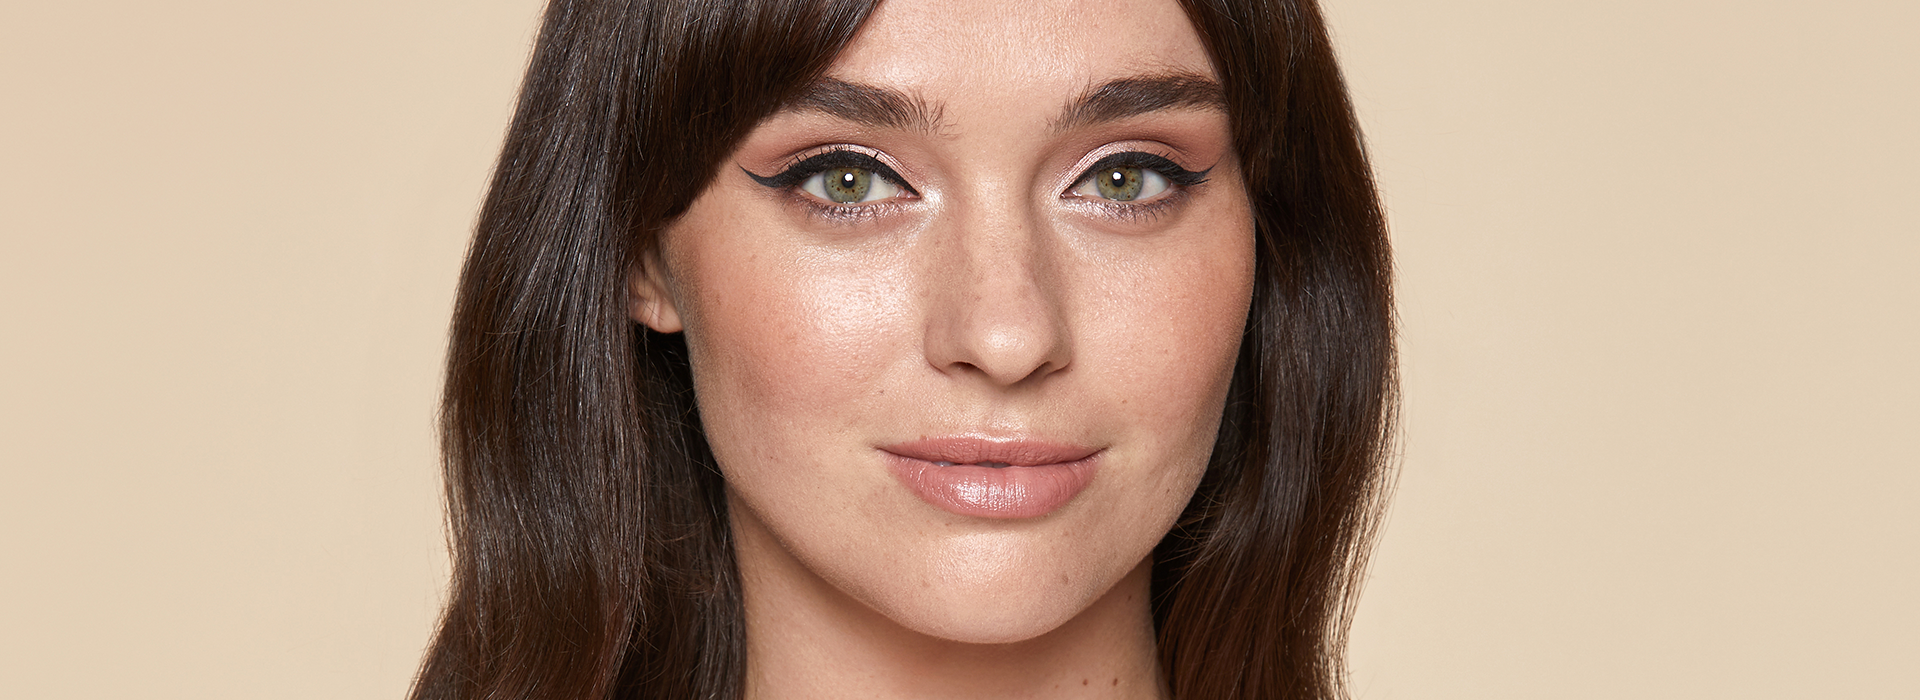 How to get the Pink Muse makeup look with Bryony Blake